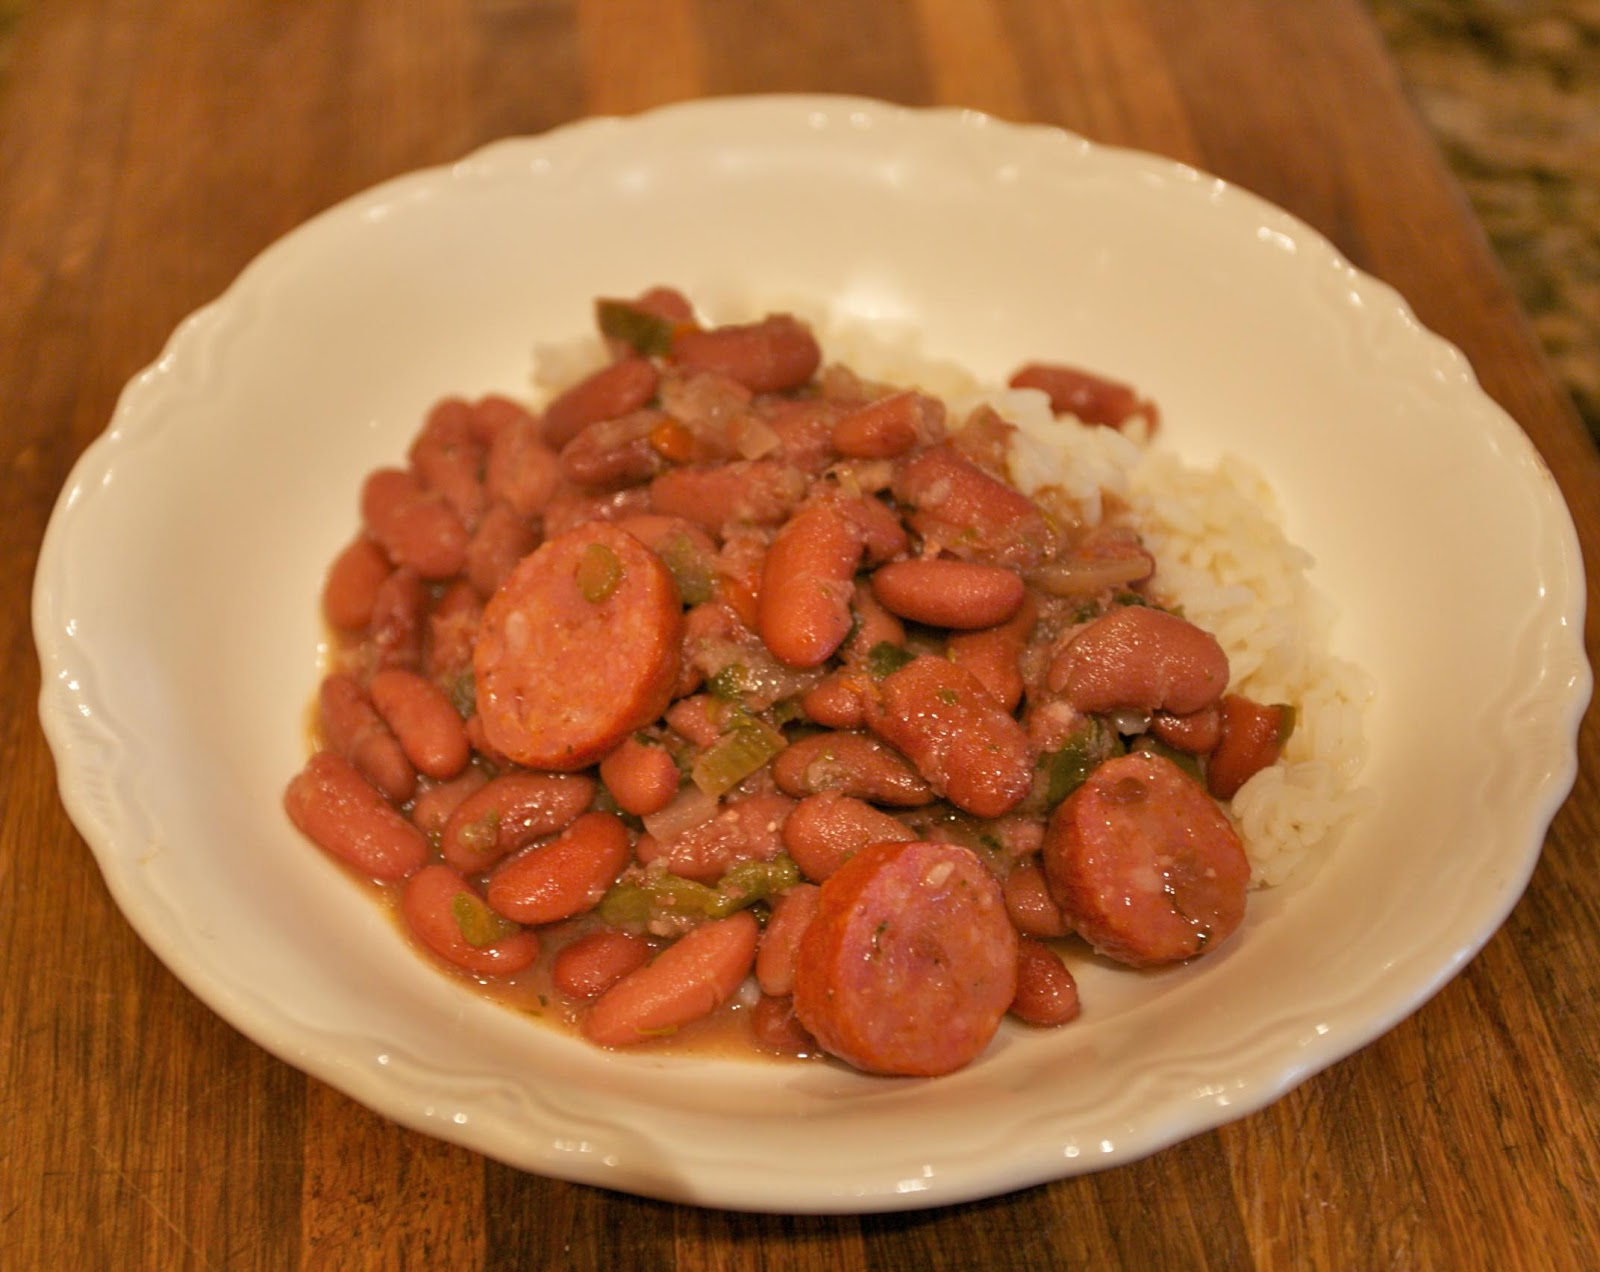 Octoberfarm: Cajun Red Beans and Rice in a Slow Cooker